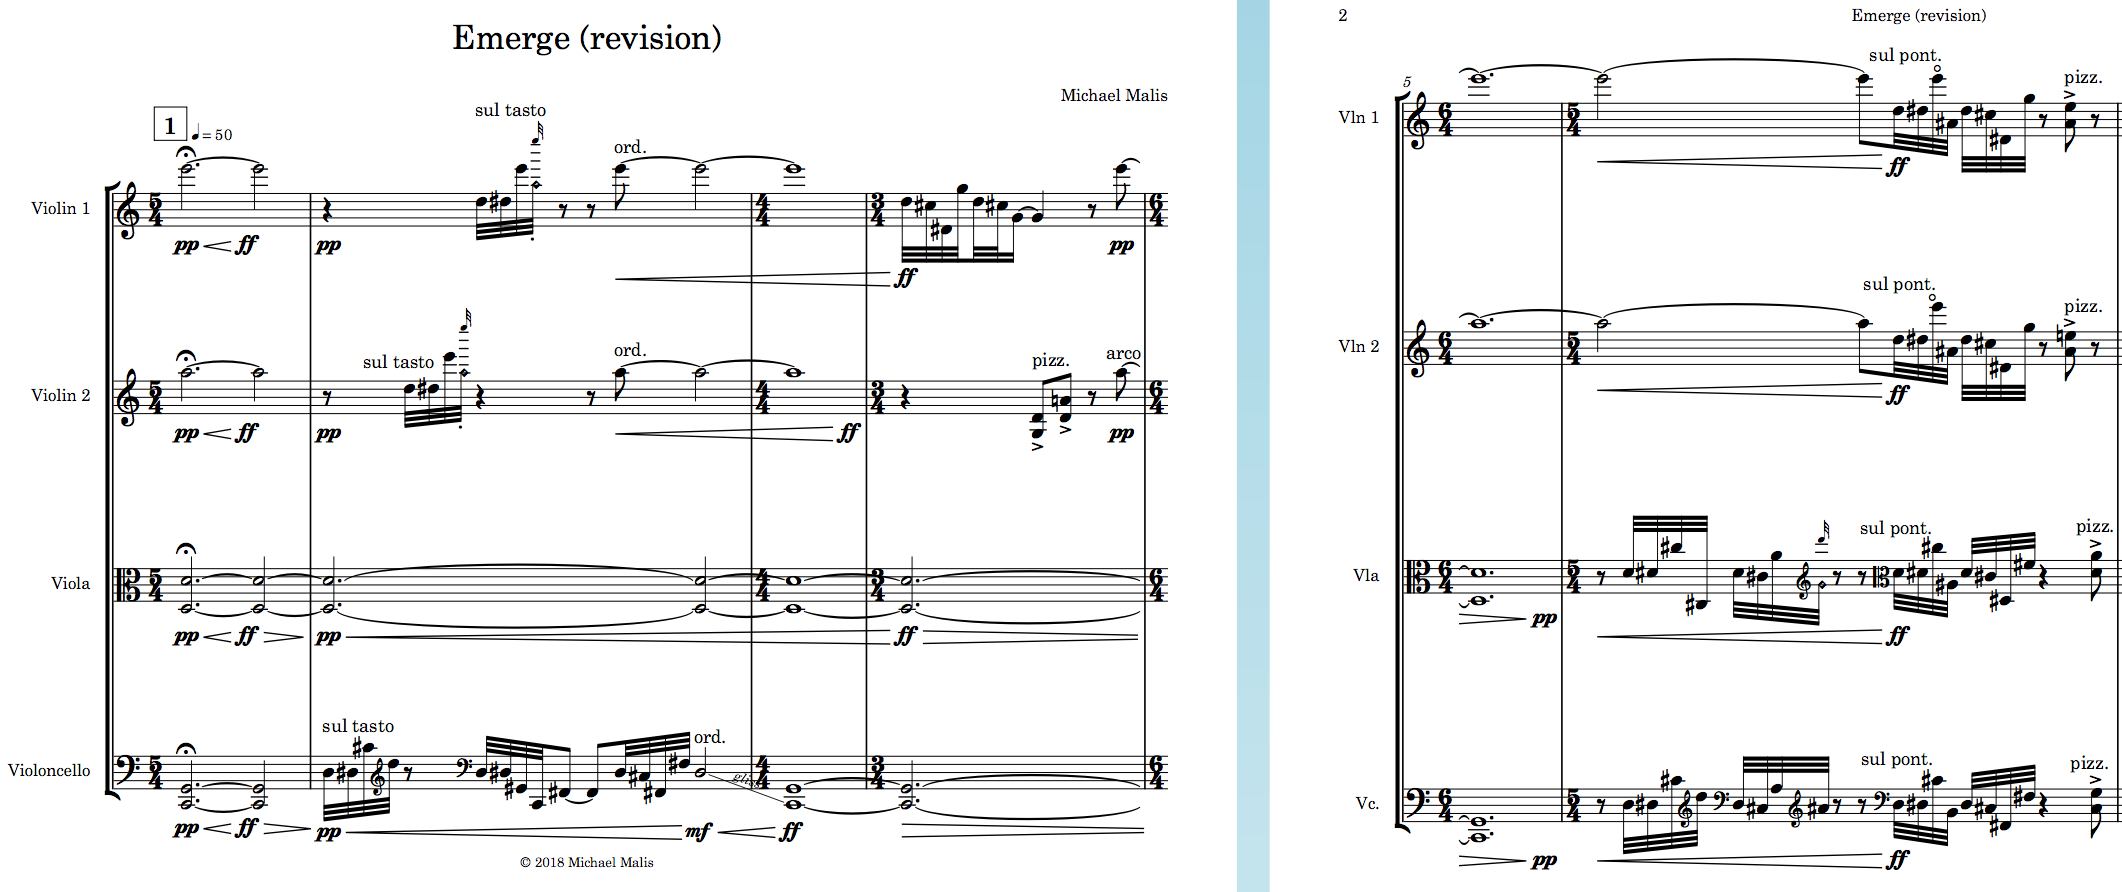 """The opening of  Emerge  with unified bar lines and time signatures between the players. (Notice too that I ended up taking the violins down an octave for their held """"primary harmony"""" notes. This decision was made after the first reading session, where the violinists' valliant efforts were still not enough to overcome the unwise decision of writing so high so consistently. Taking these 5ths down an octave throughout the piece was the best decision I could have made for the piece.)"""